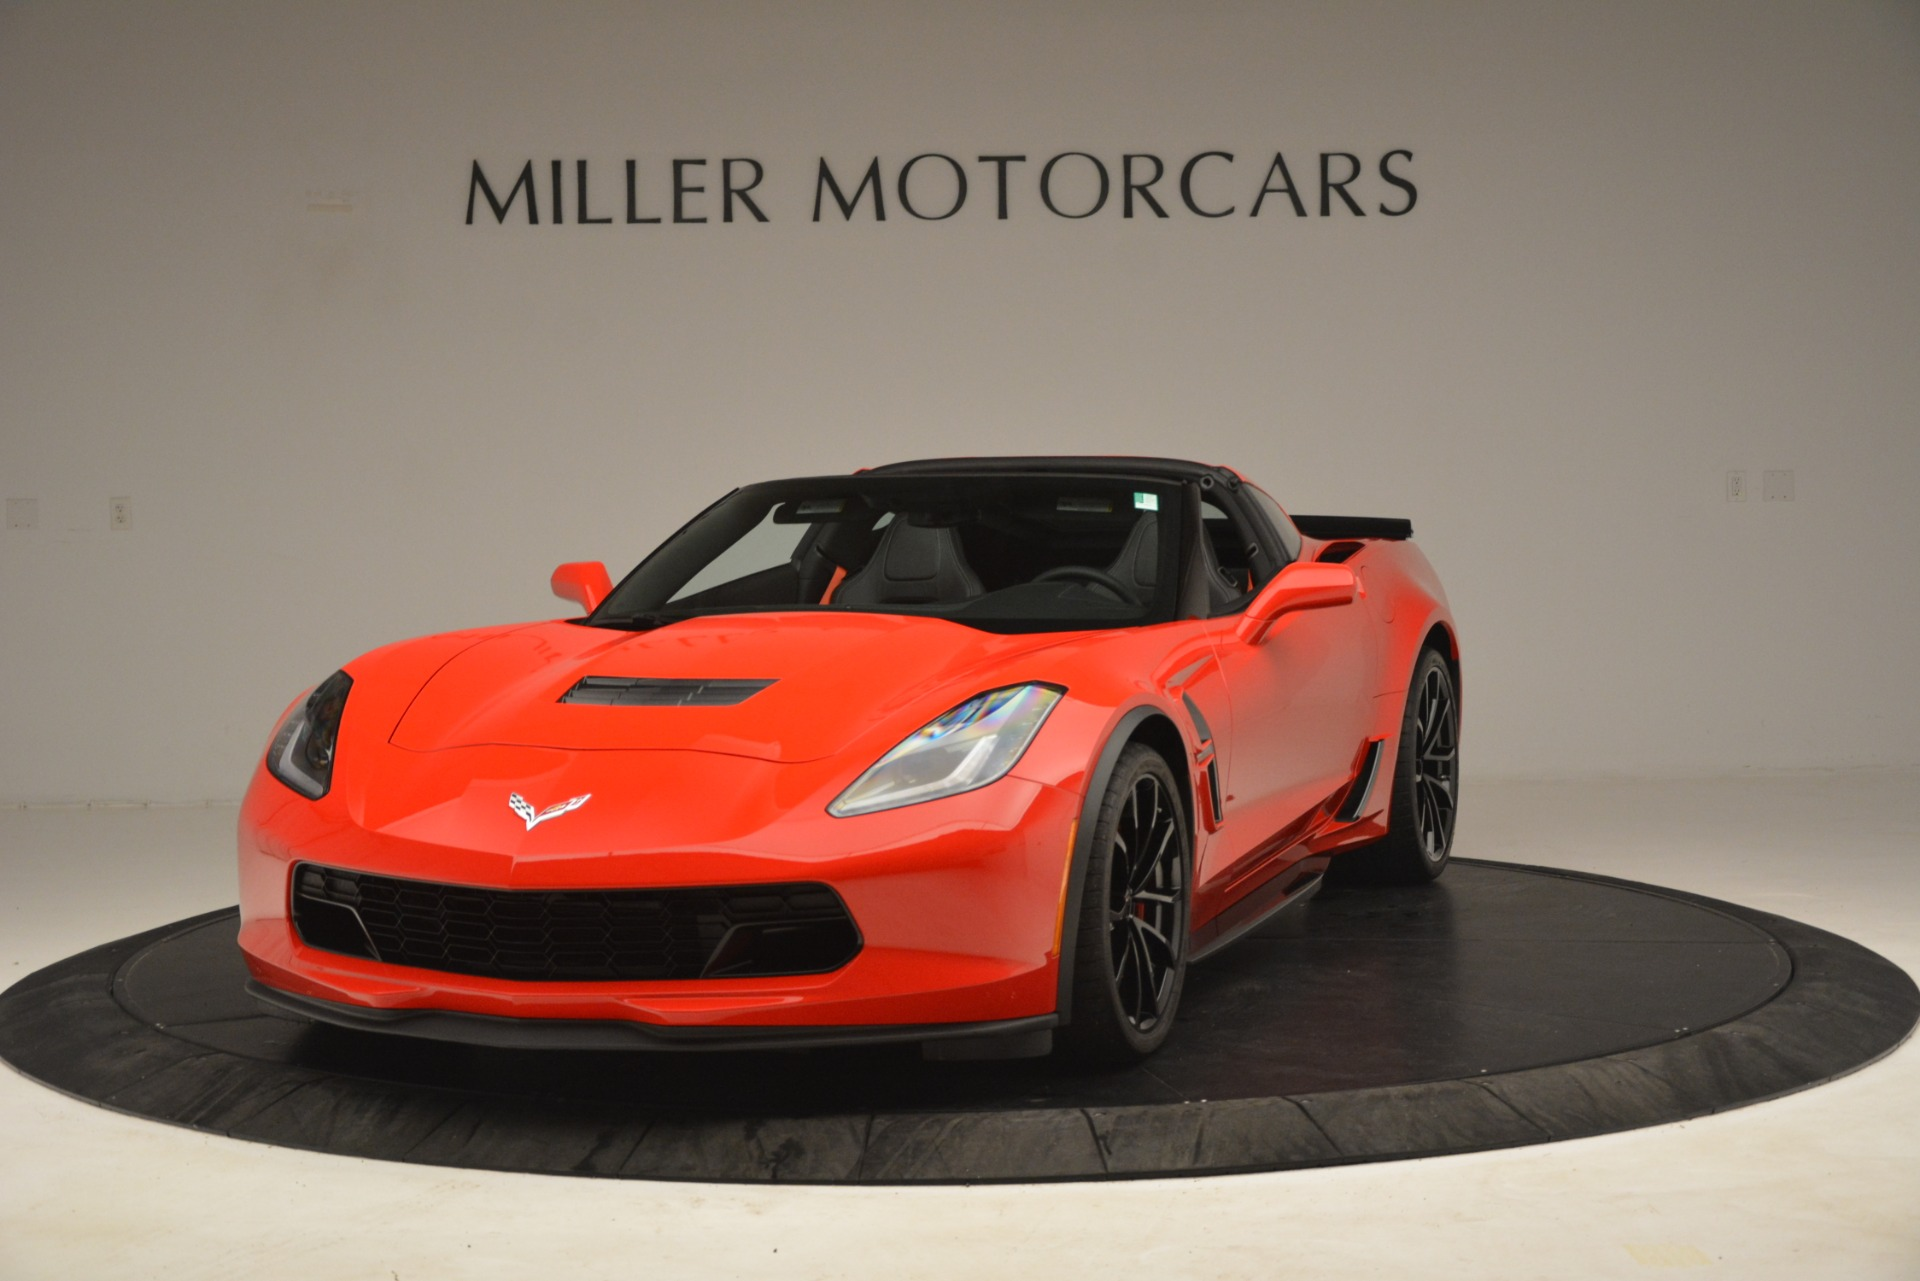 Used 2019 Chevrolet Corvette Grand Sport for sale Sold at Bentley Greenwich in Greenwich CT 06830 1